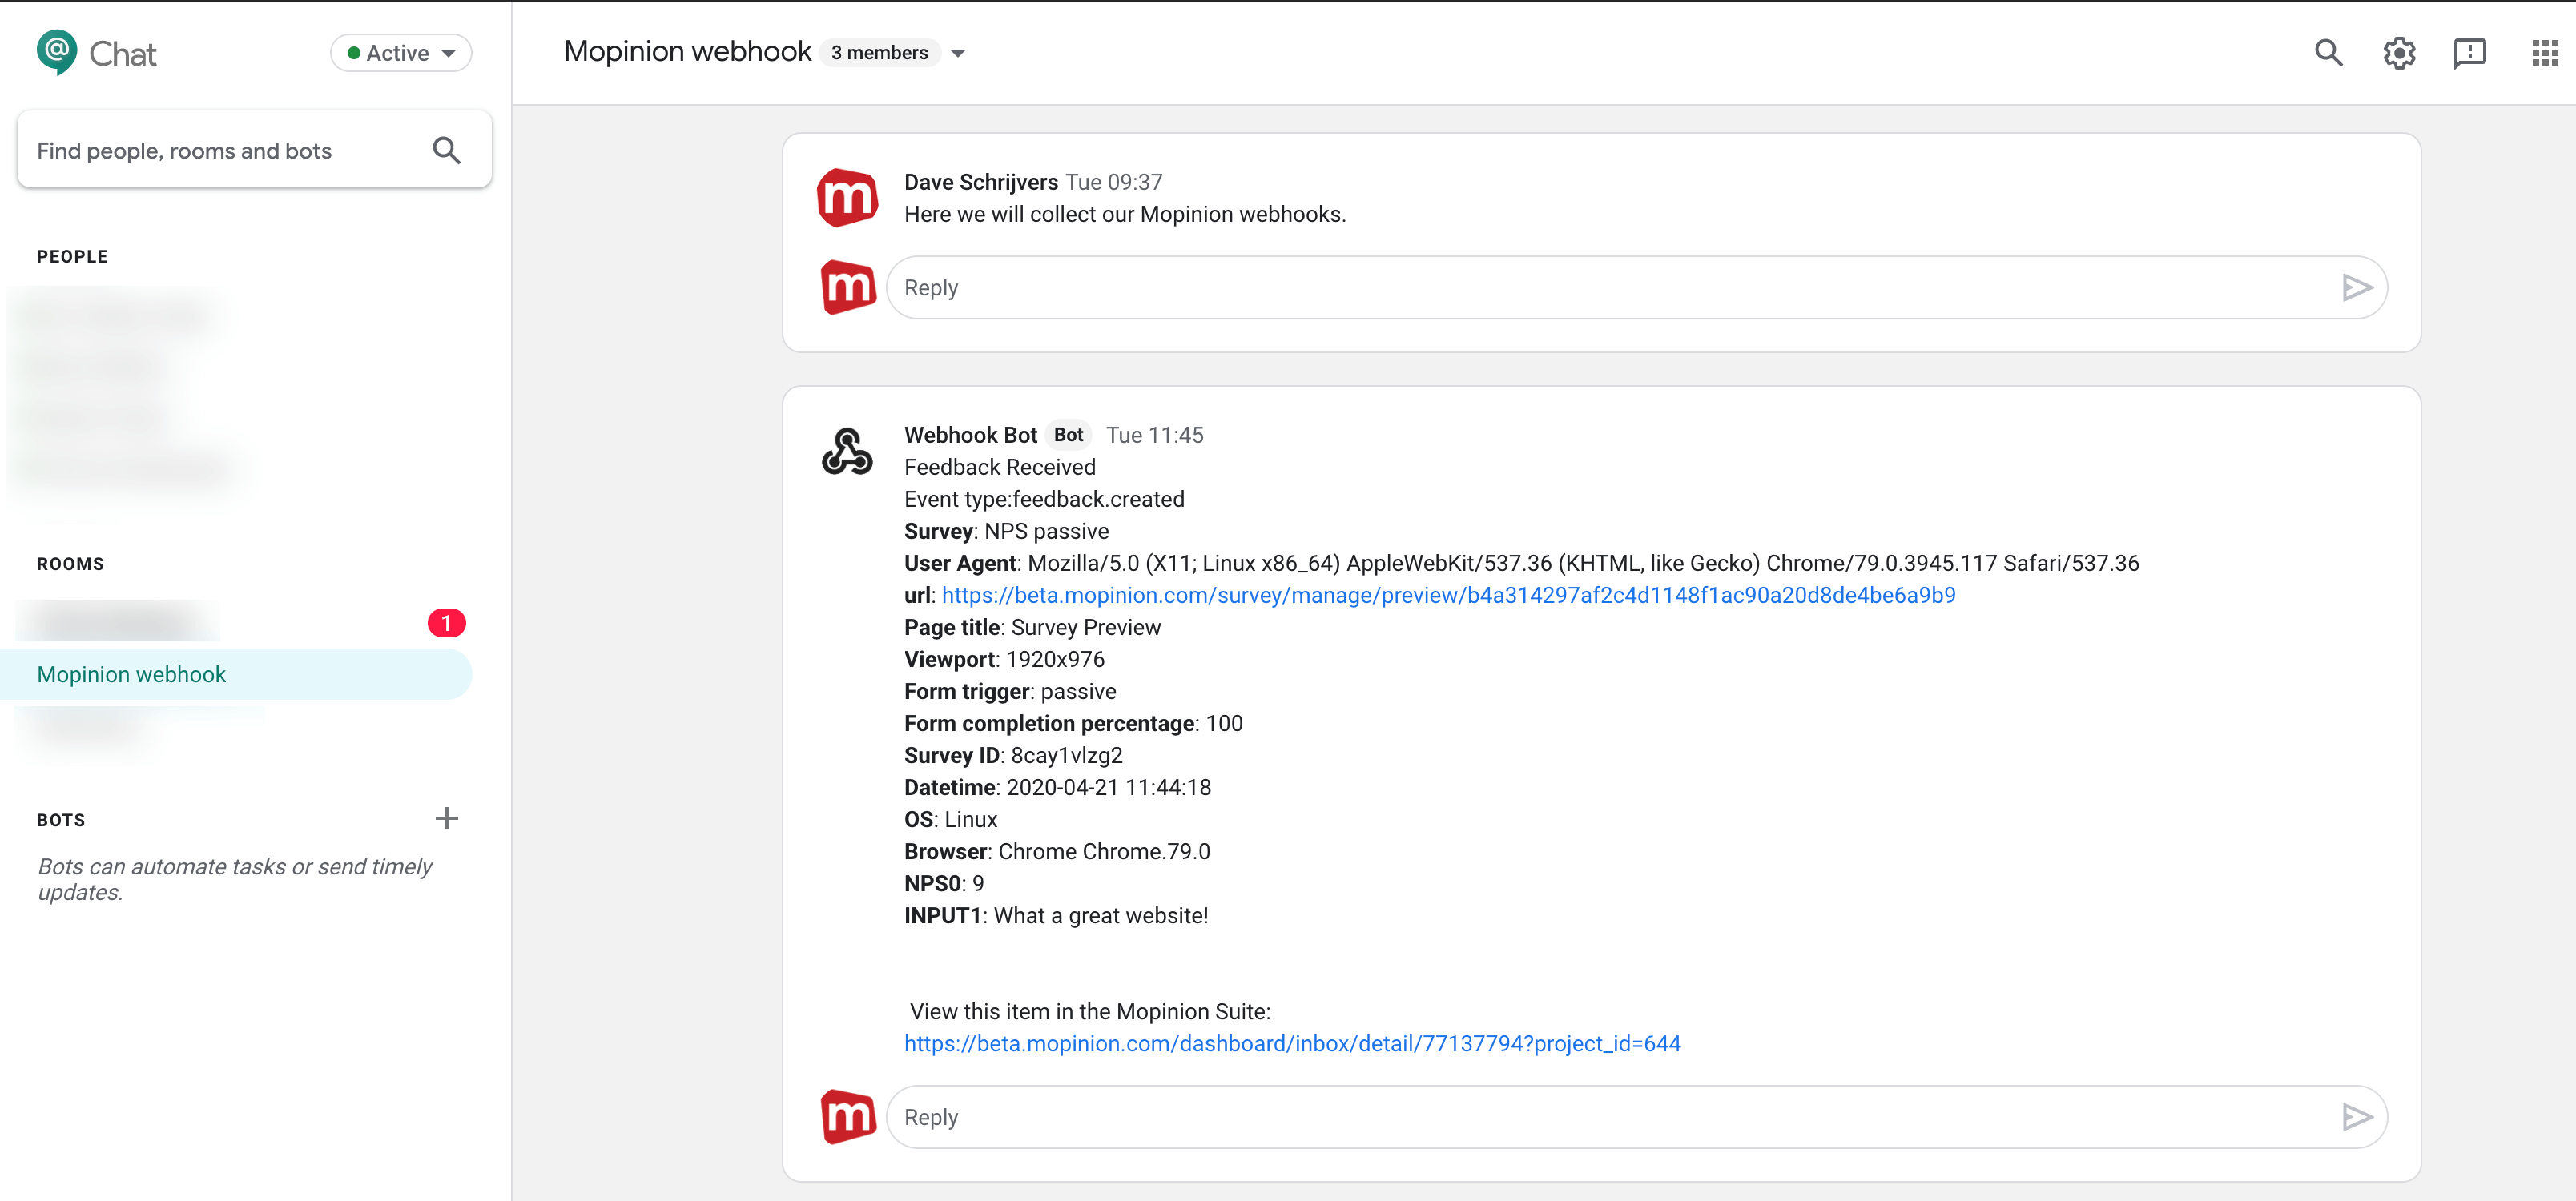 Mopinion: Mopinion now integrates with messaging platform Google Chat - Webhooks sent